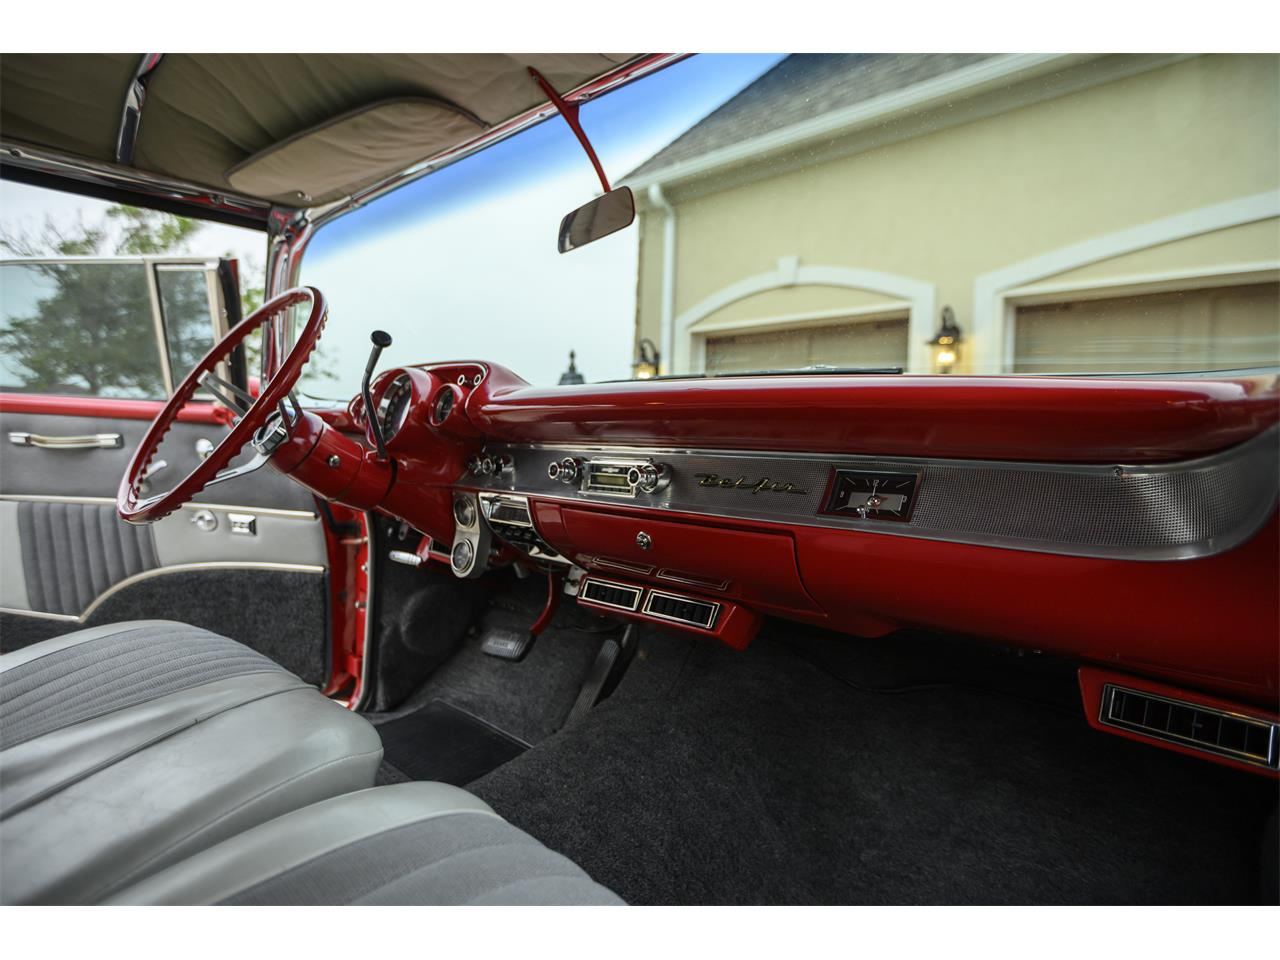 Large Picture of 1957 Chevrolet Bel Air Nomad located in Lawton Oklahoma - $67,400.00 - PZTB